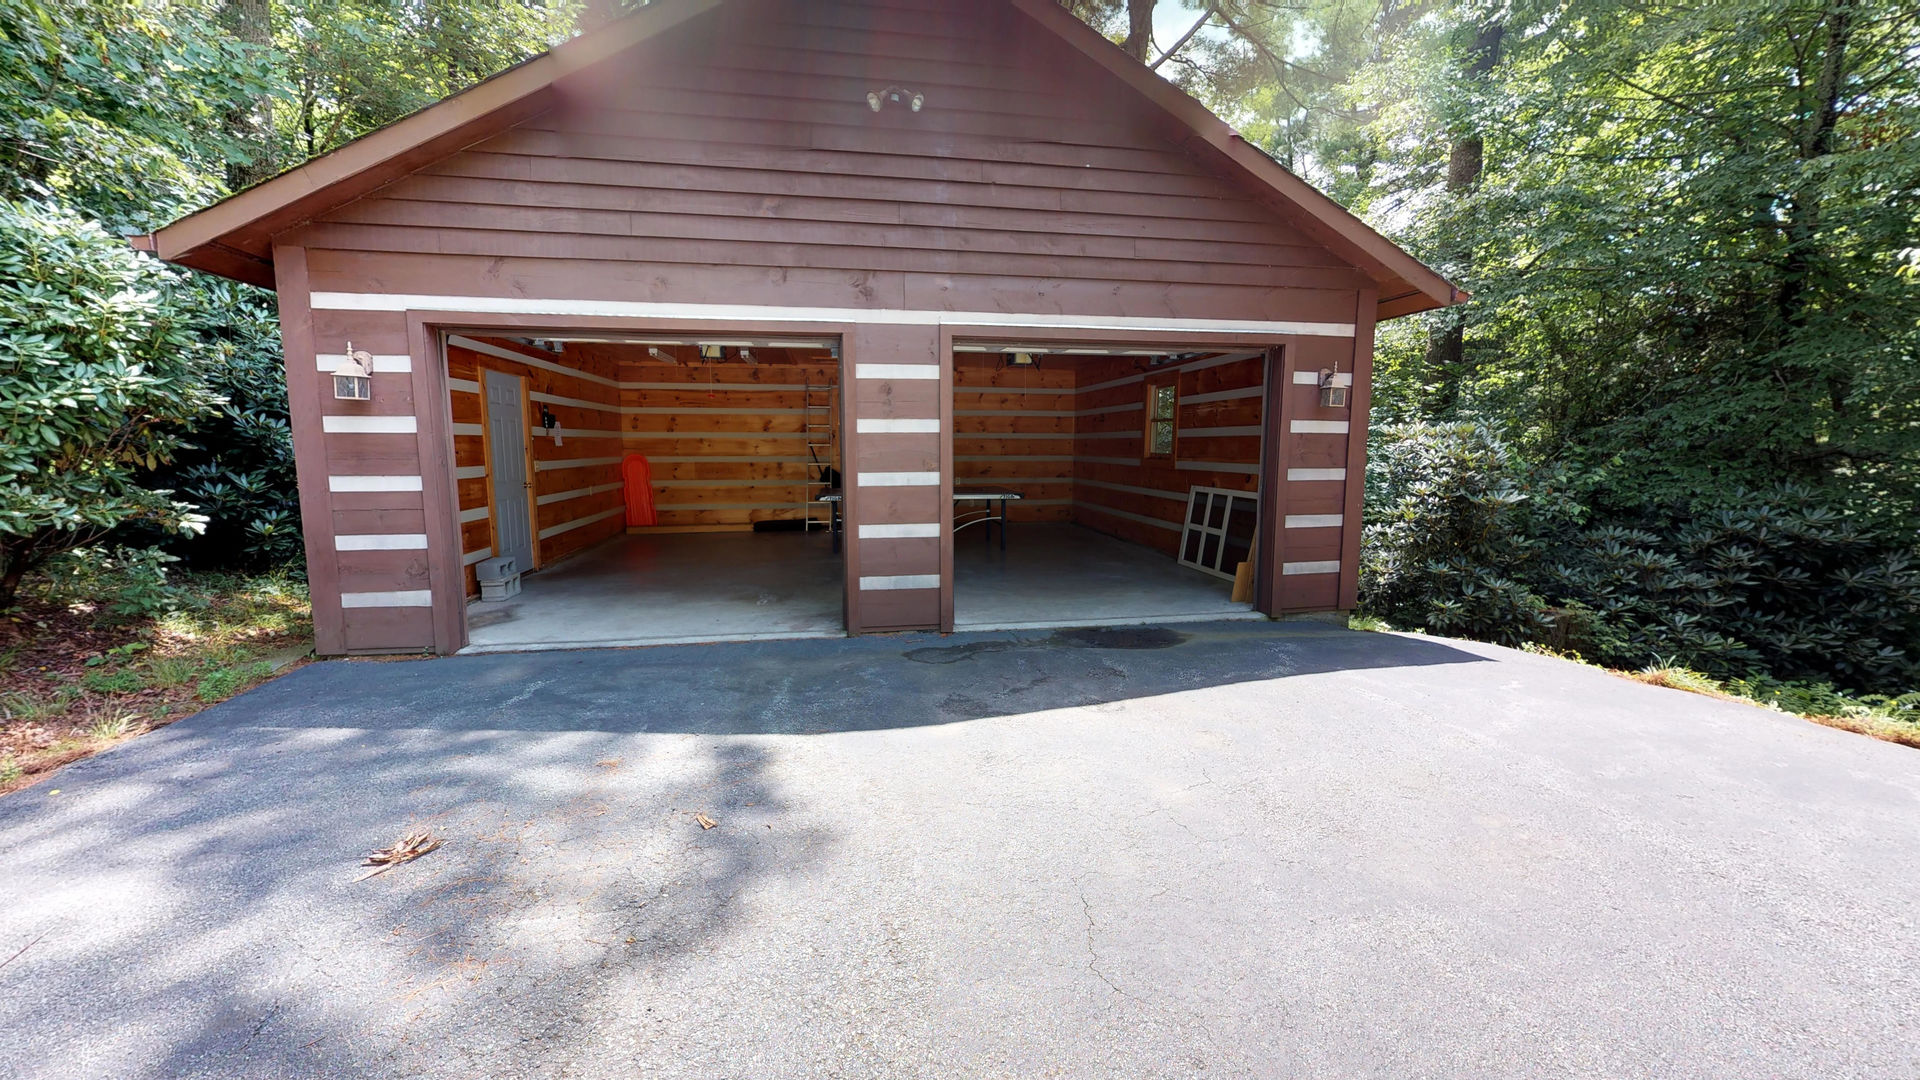 Detached 2 car garage services as the game room